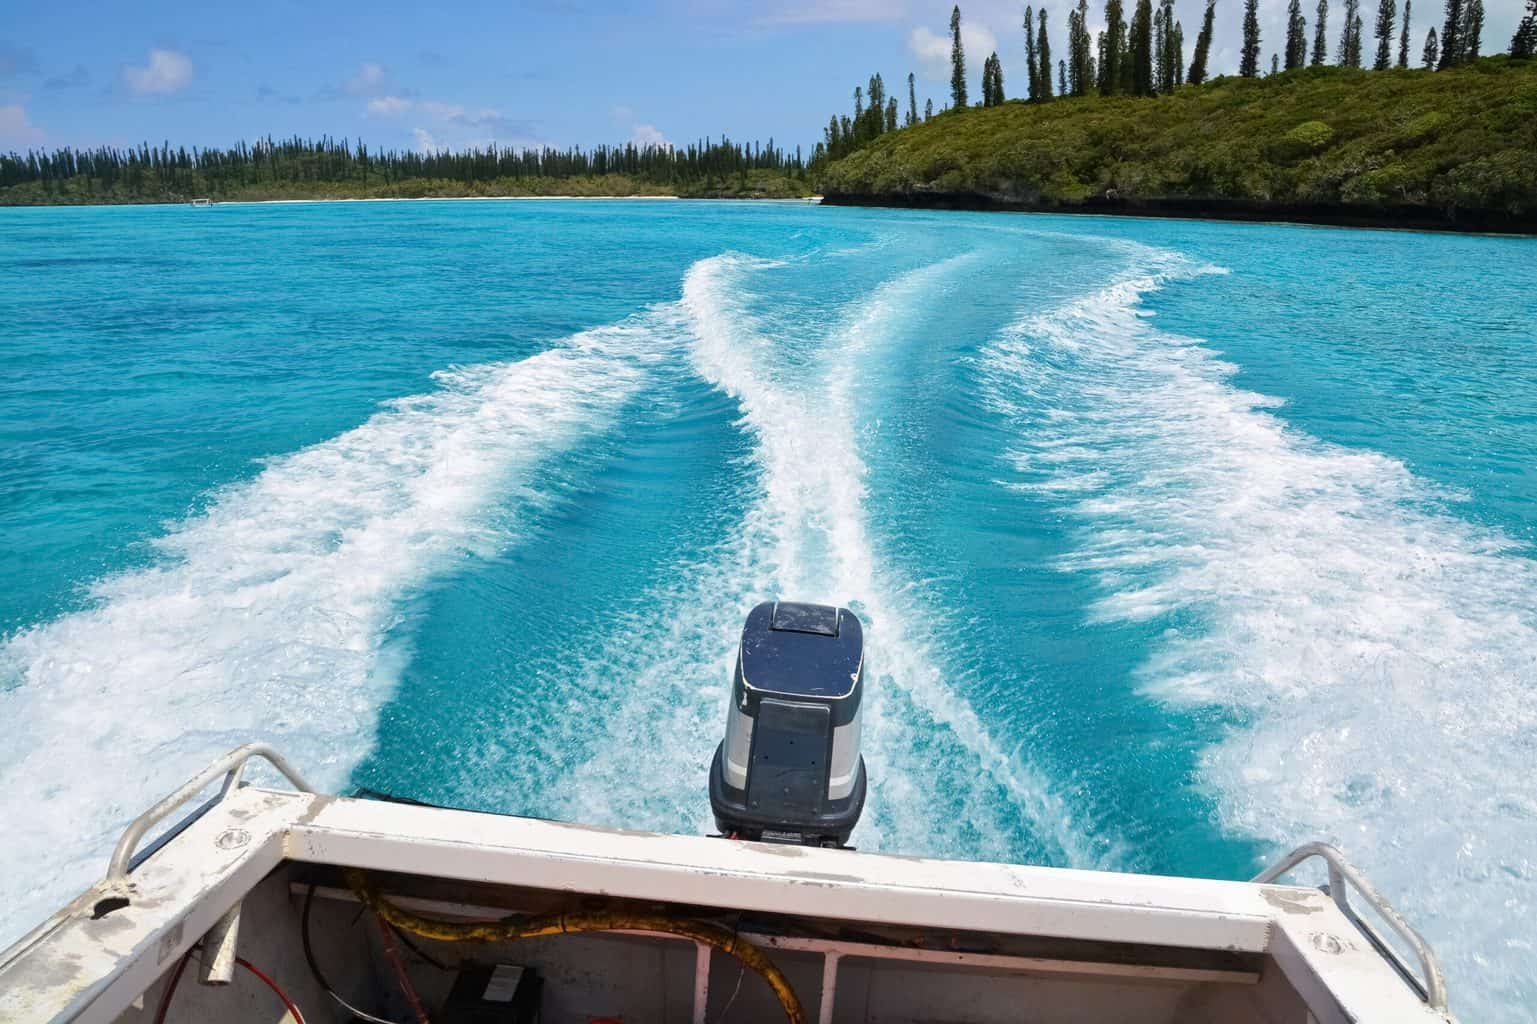 A rear shot of a moving boat with trolling motor